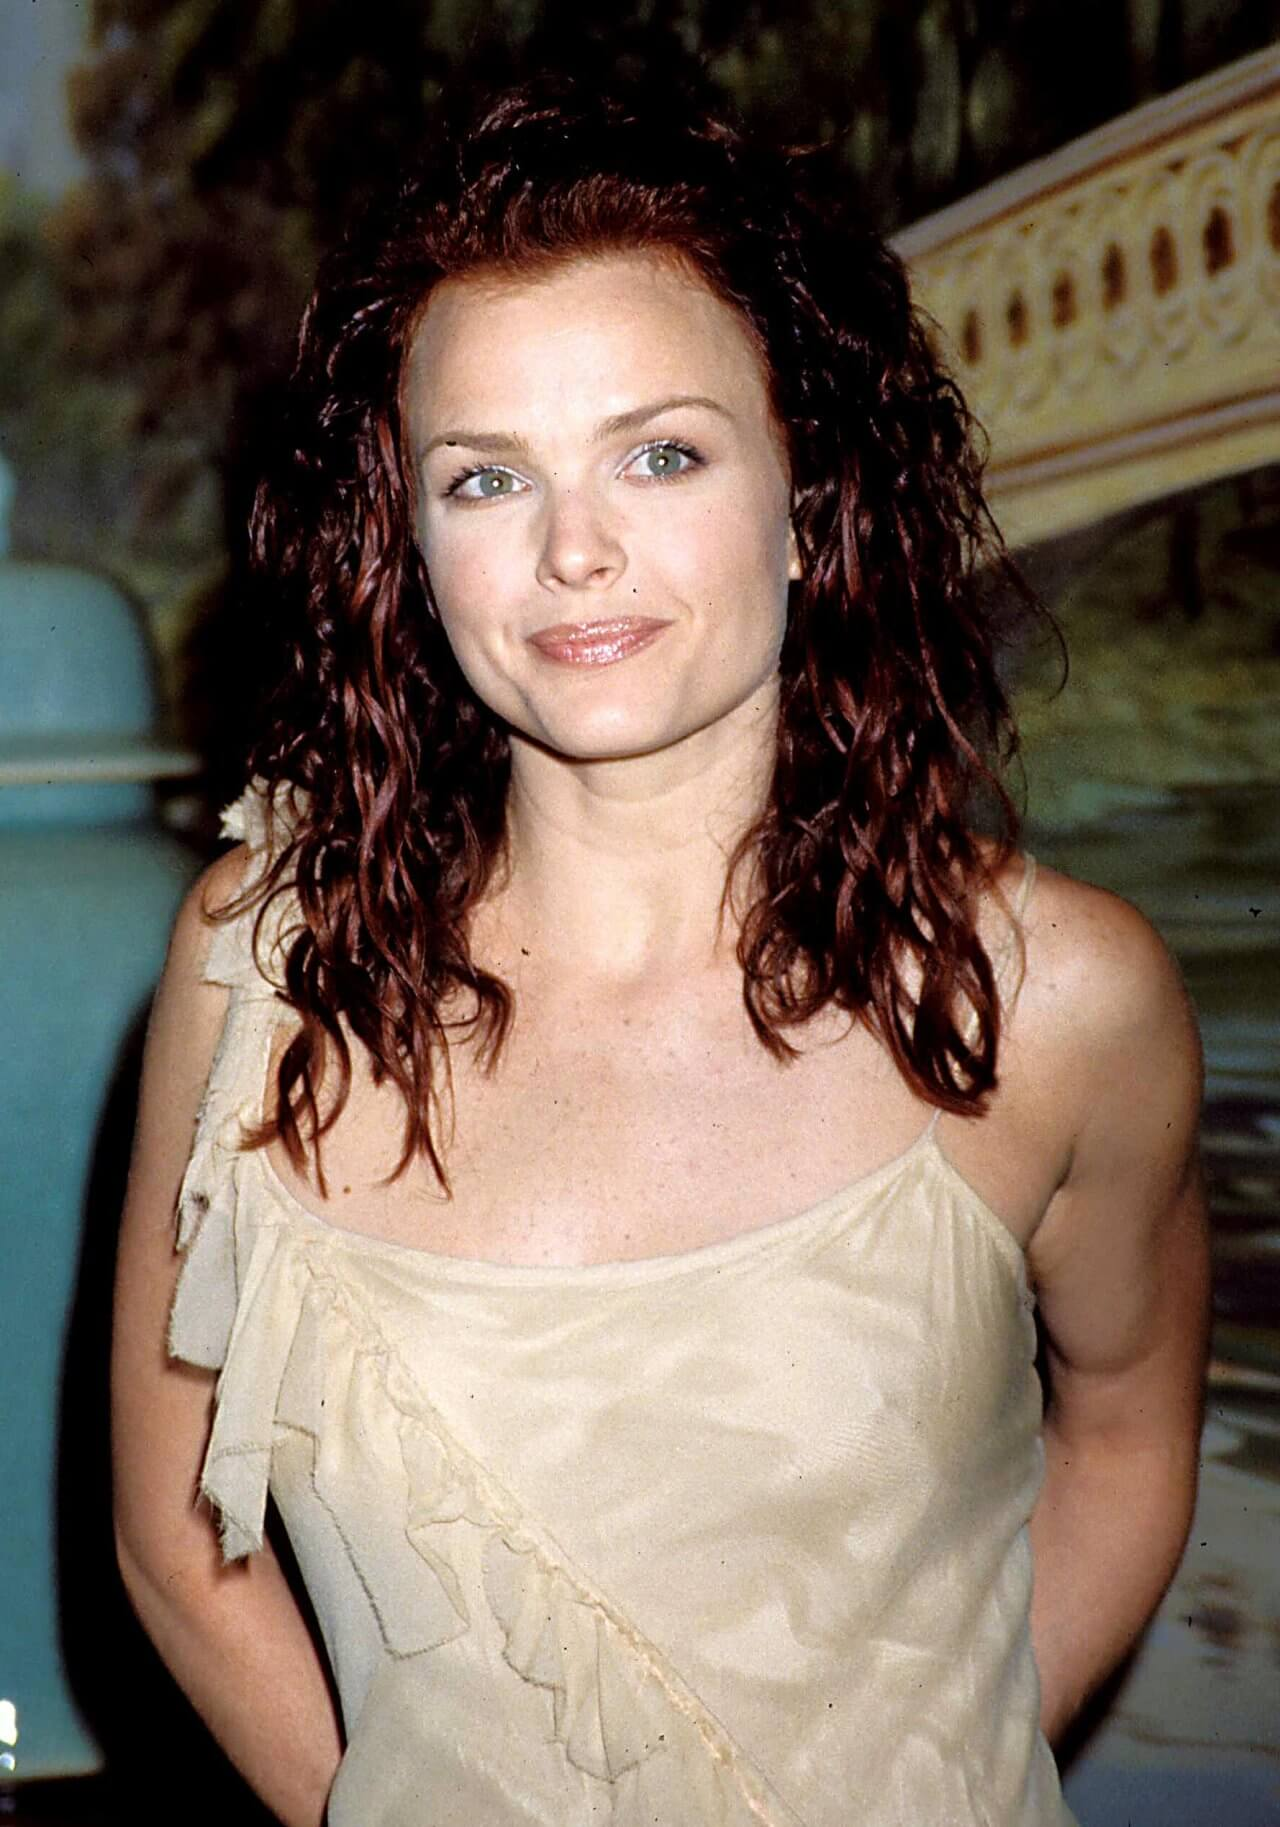 Dina-Meyer-cleavages-awesome-pic